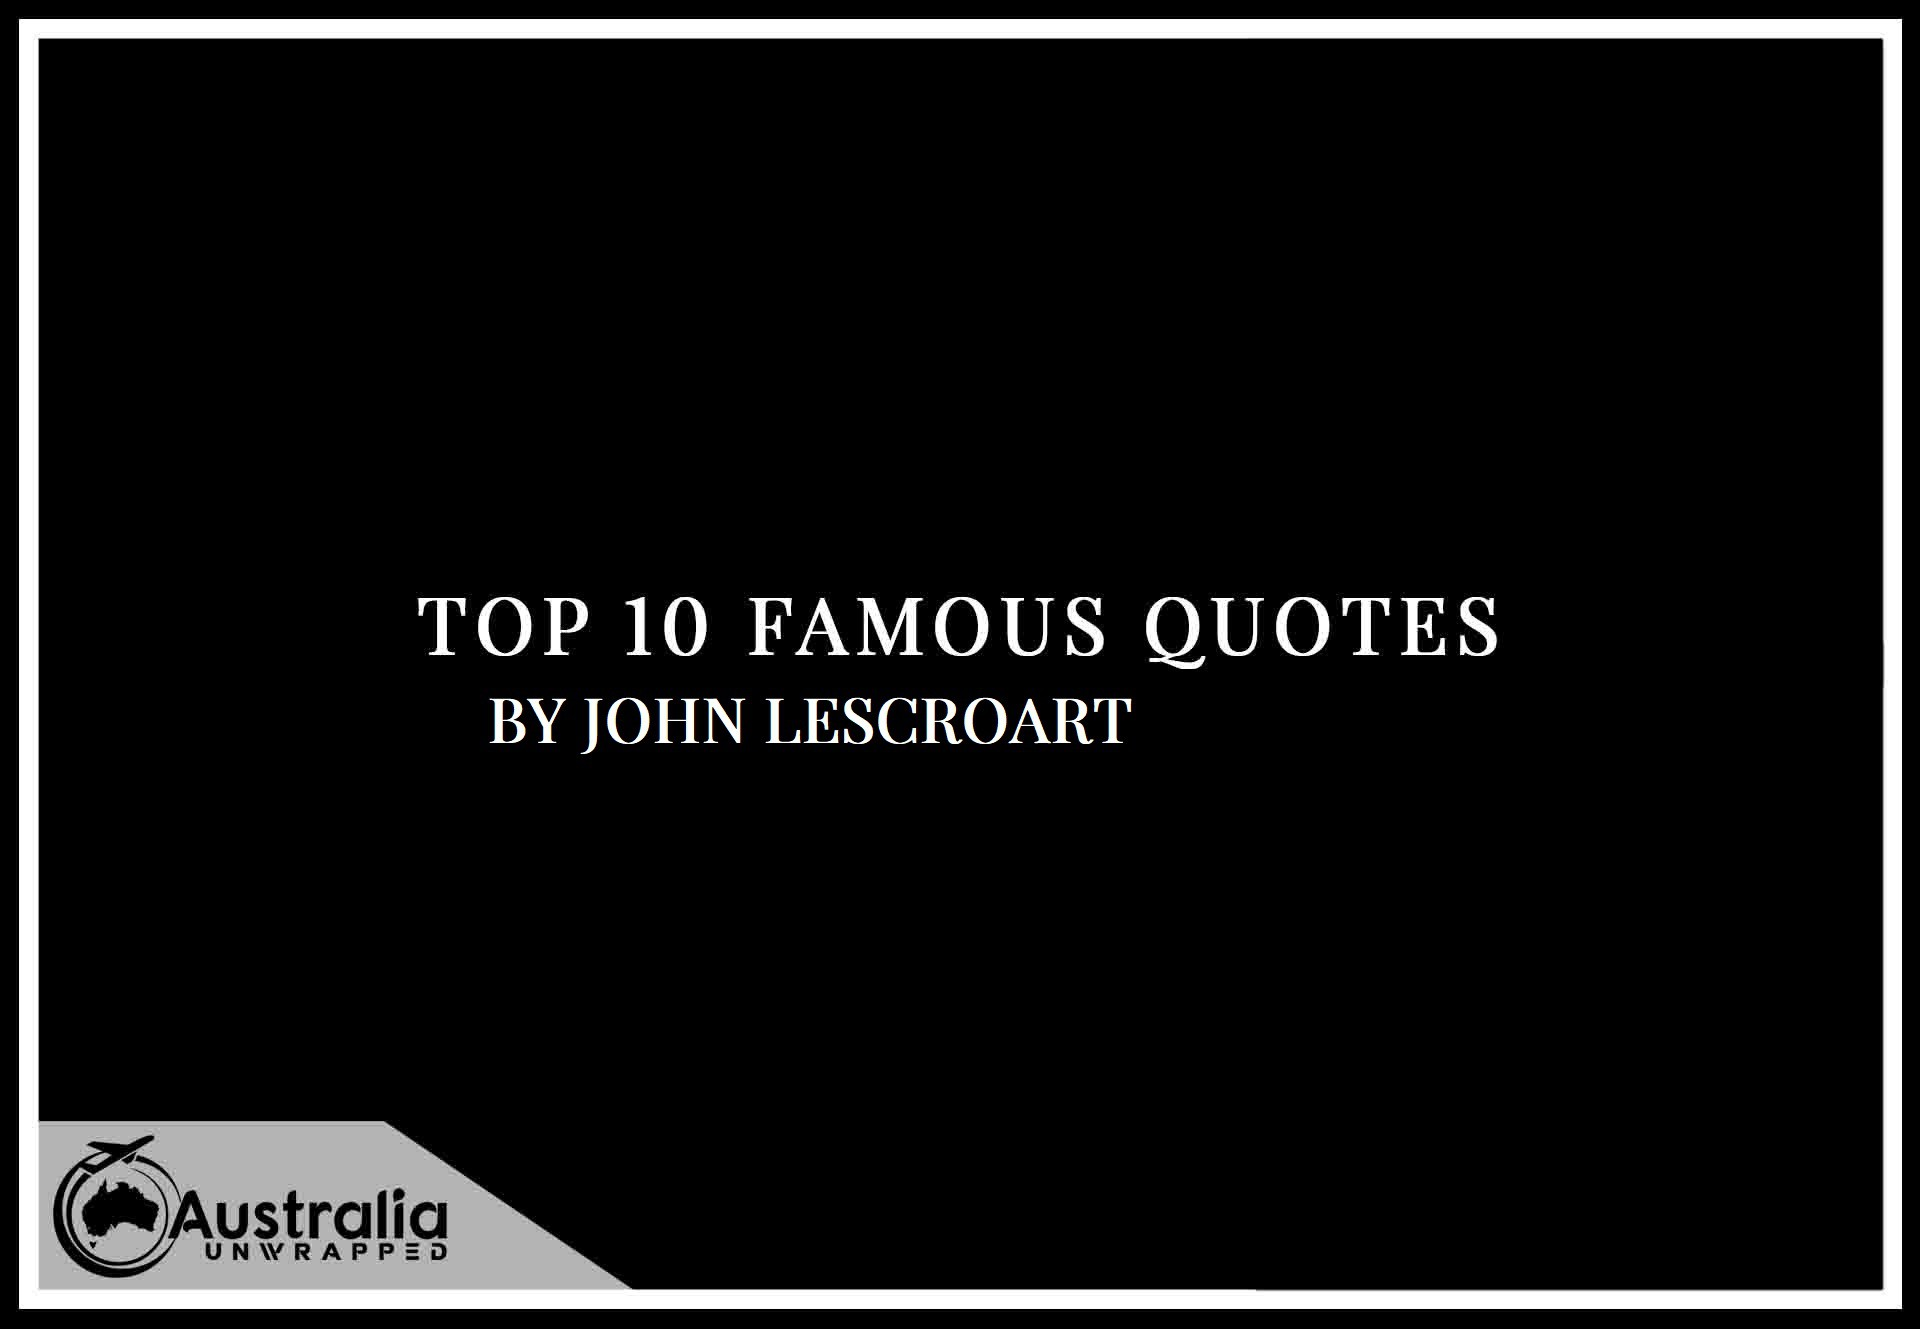 Top 10 Famous Quotes by Author John Lescroart